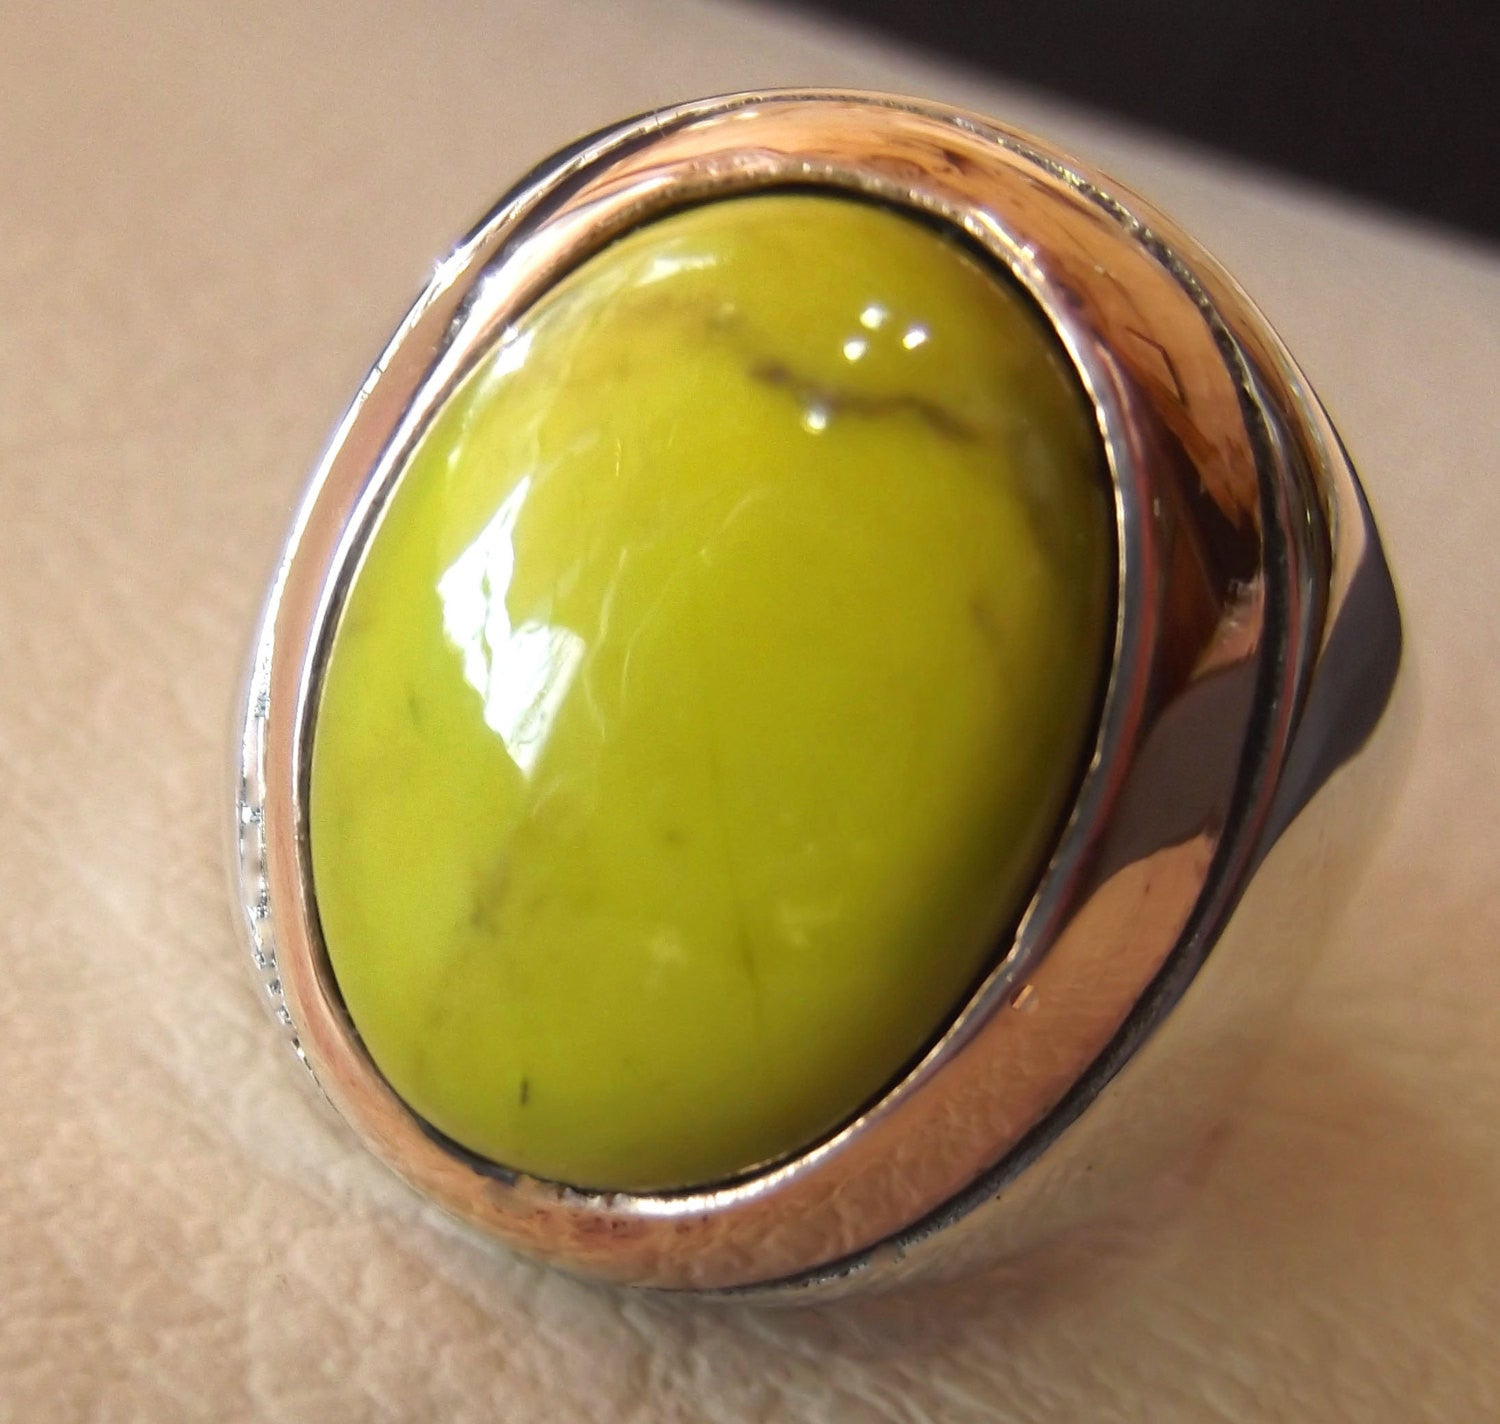 mohave yellow turquoise natural stone semi precious oval gem sterling silver 925 men ring jewelry ottoman arabic style 2 tone bronze frame